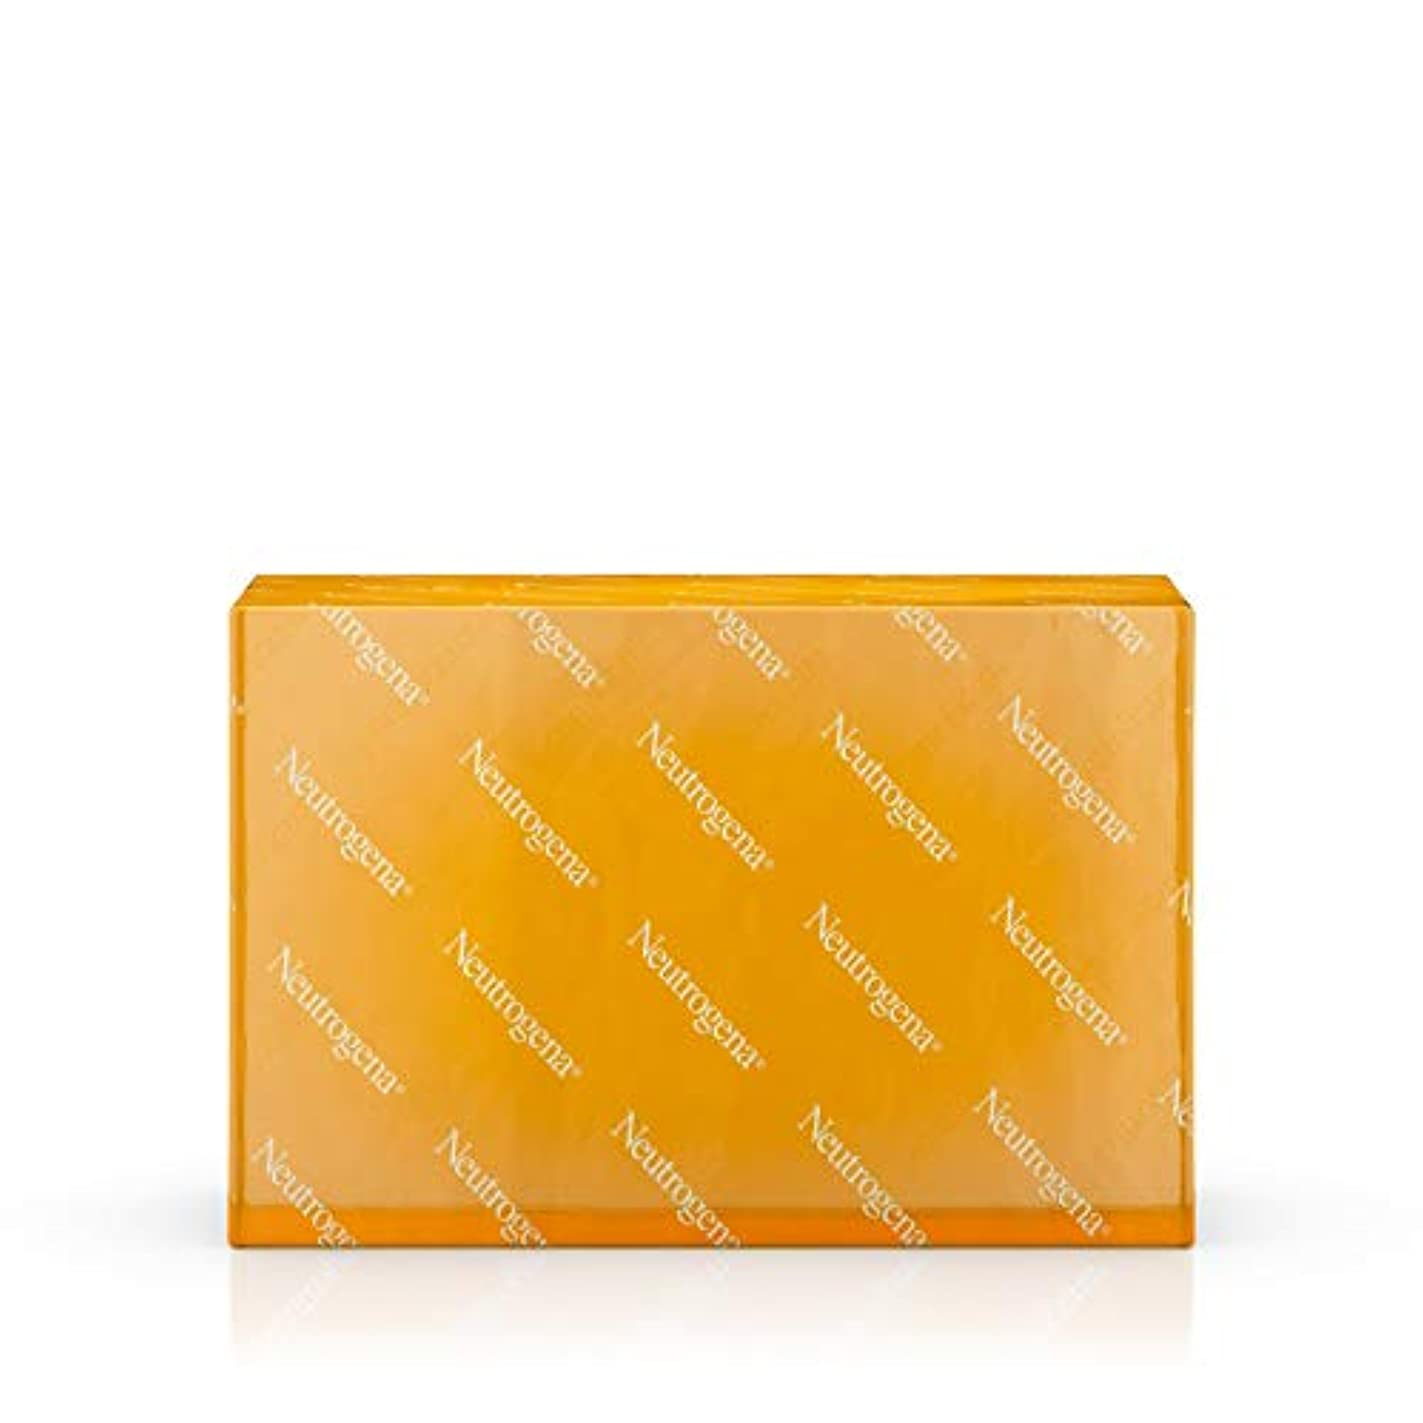 検査議論するリア王海外直送品 Neutrogena Neutrogena Transparent Facial Bar Soap Fragrance Free, Fragrance Free 3.5 oz